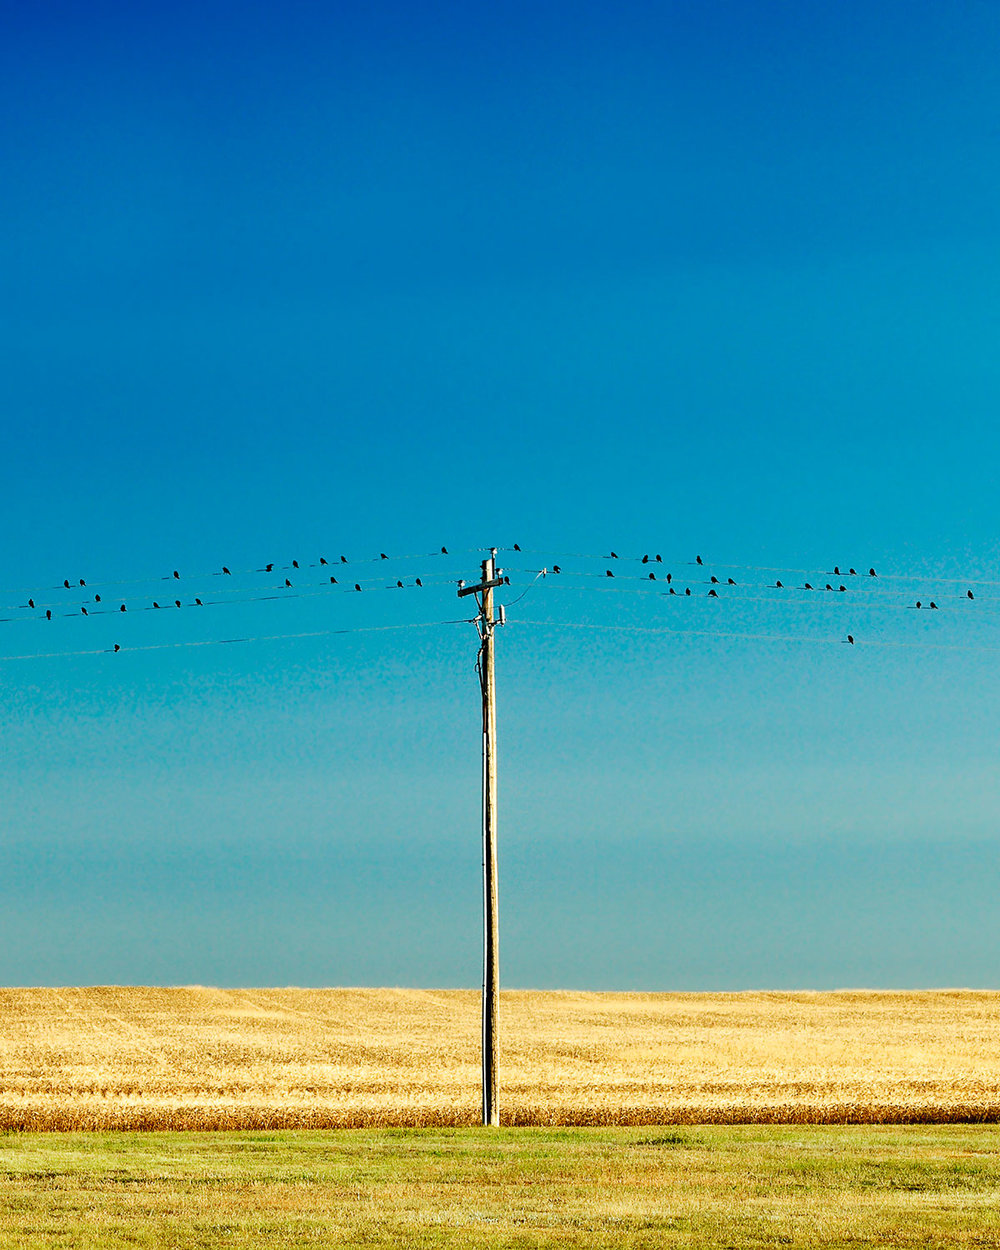 Birds and Pole